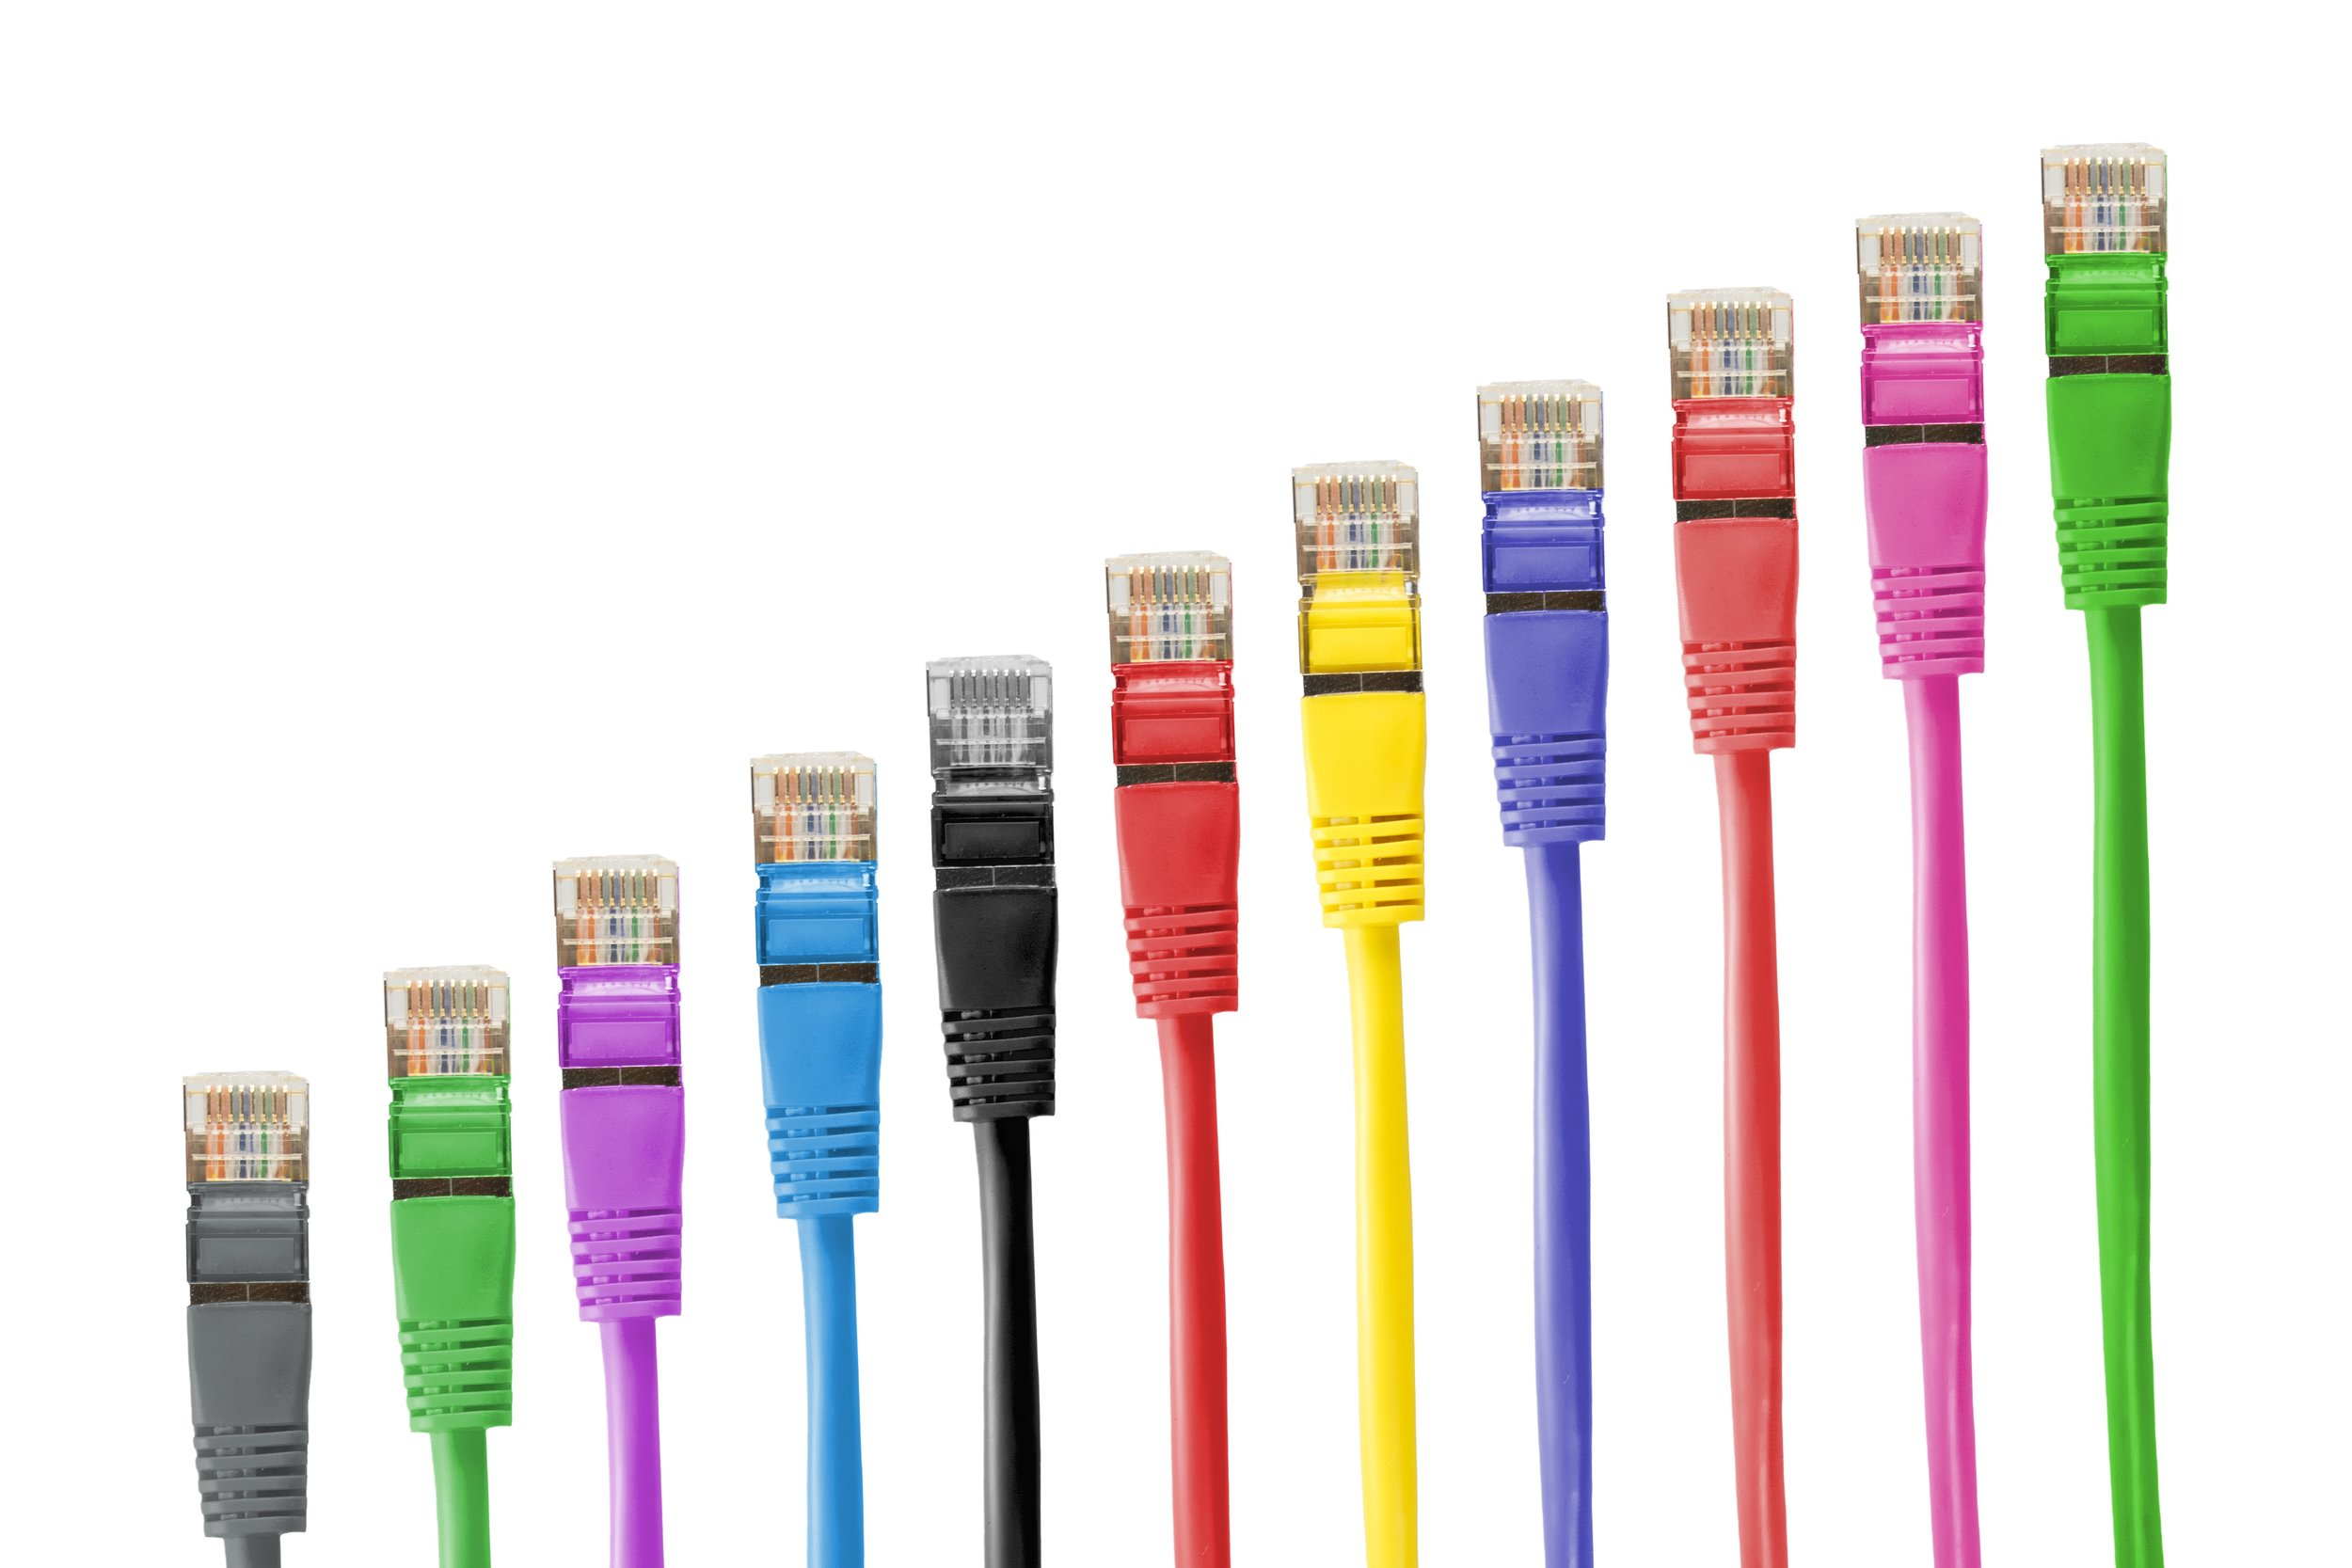 cable-colorful-colourful-47735.jpg